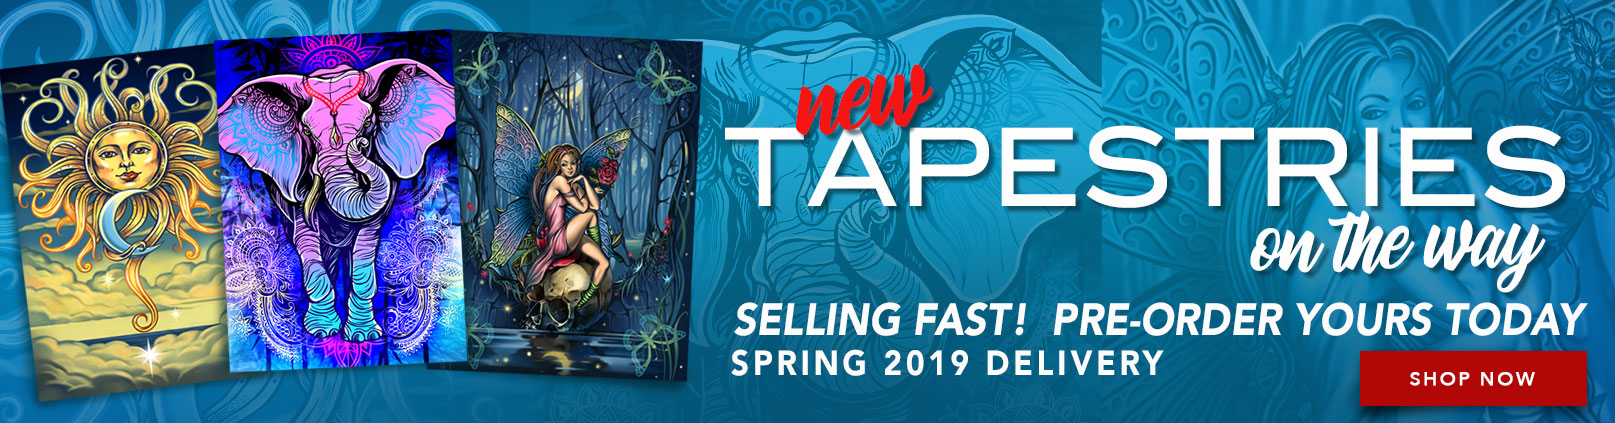 1218 New Tapestries Banner